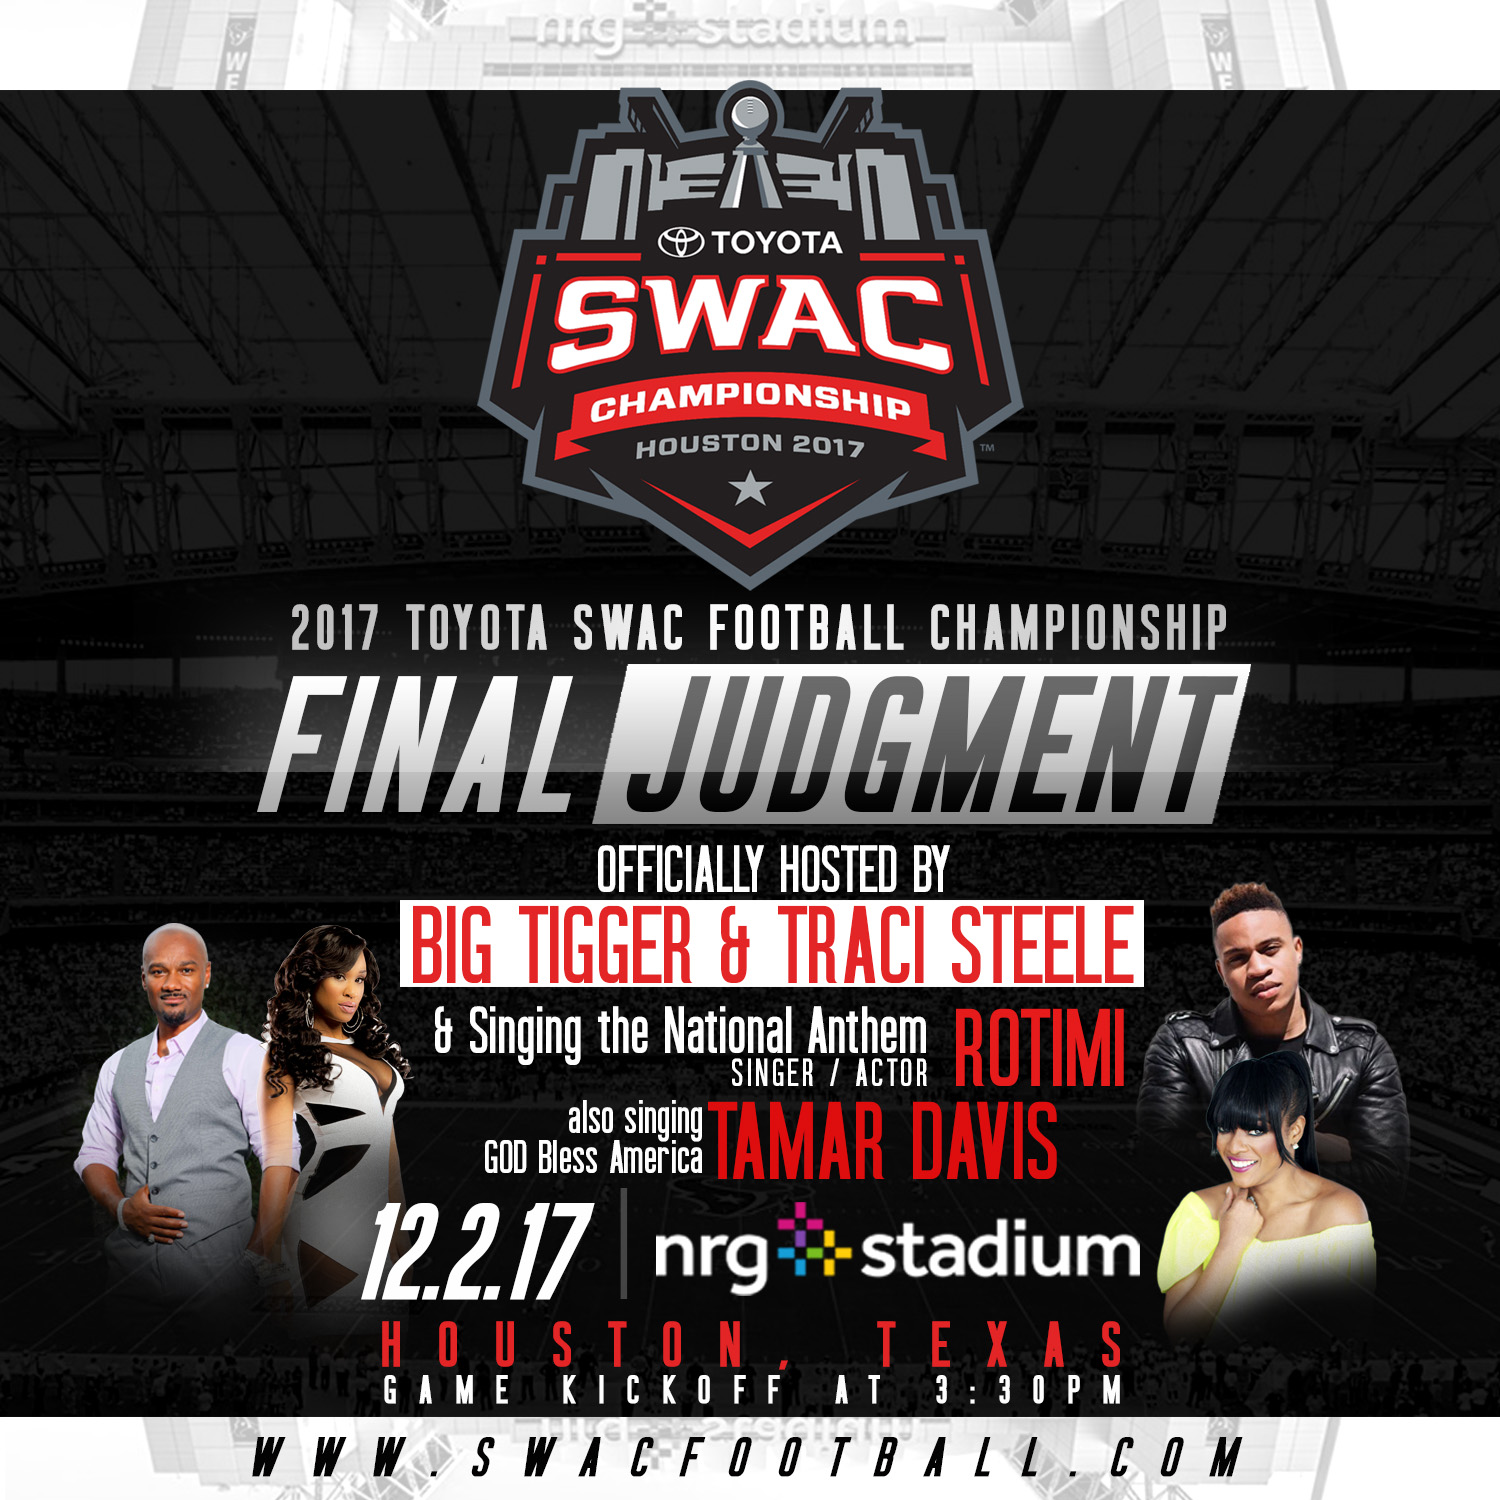 THE TOYOTA SWAC FOOTBALL CHAMPIONSHIP